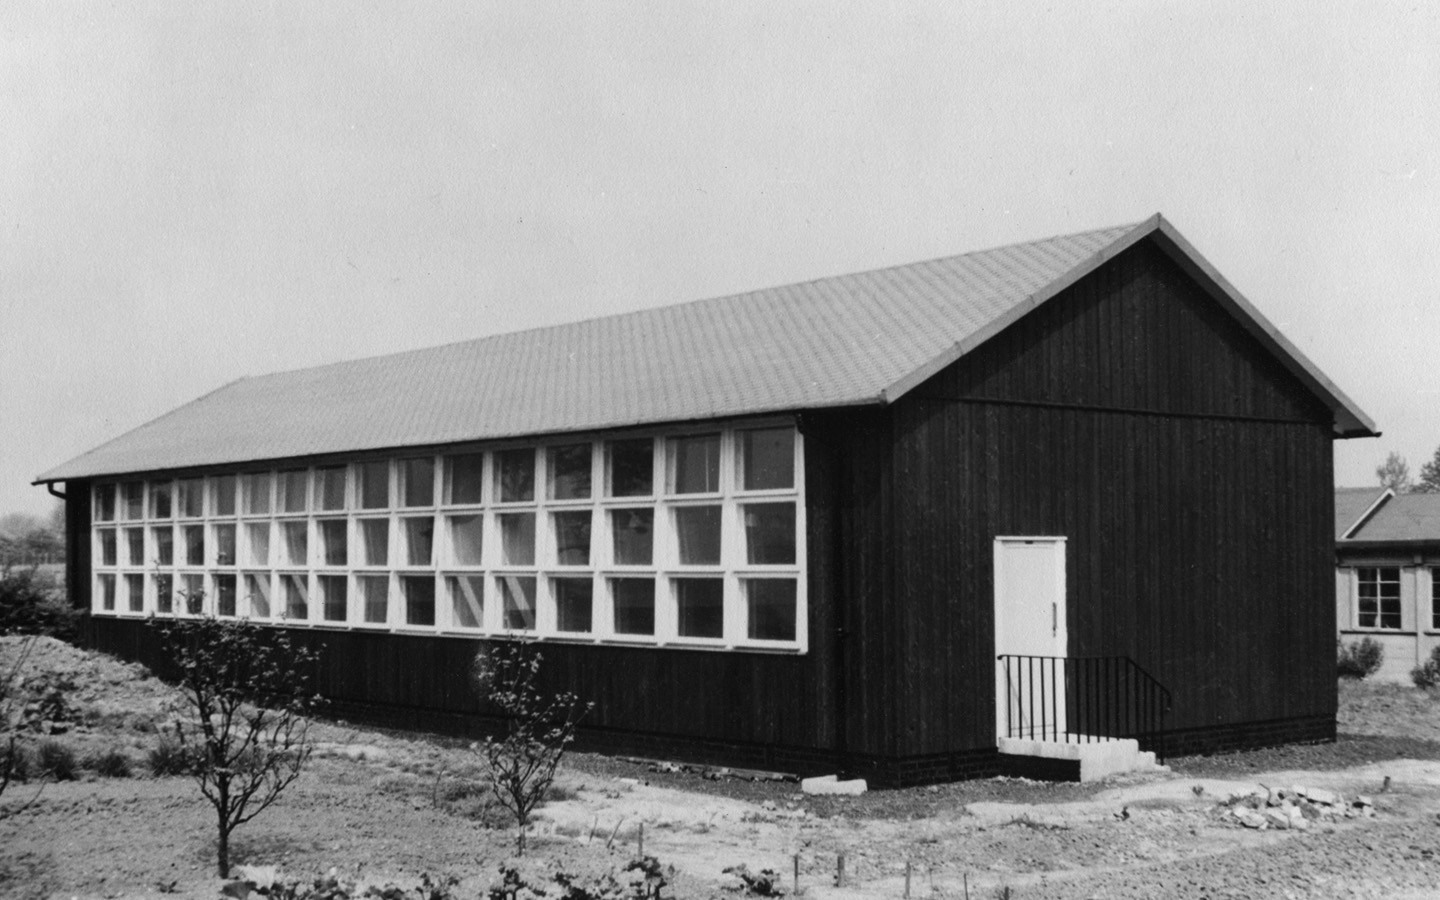 An old black and white photo of a wooden Puutalo school. On the wall there are 3 rows of windows with 16 windows in each.